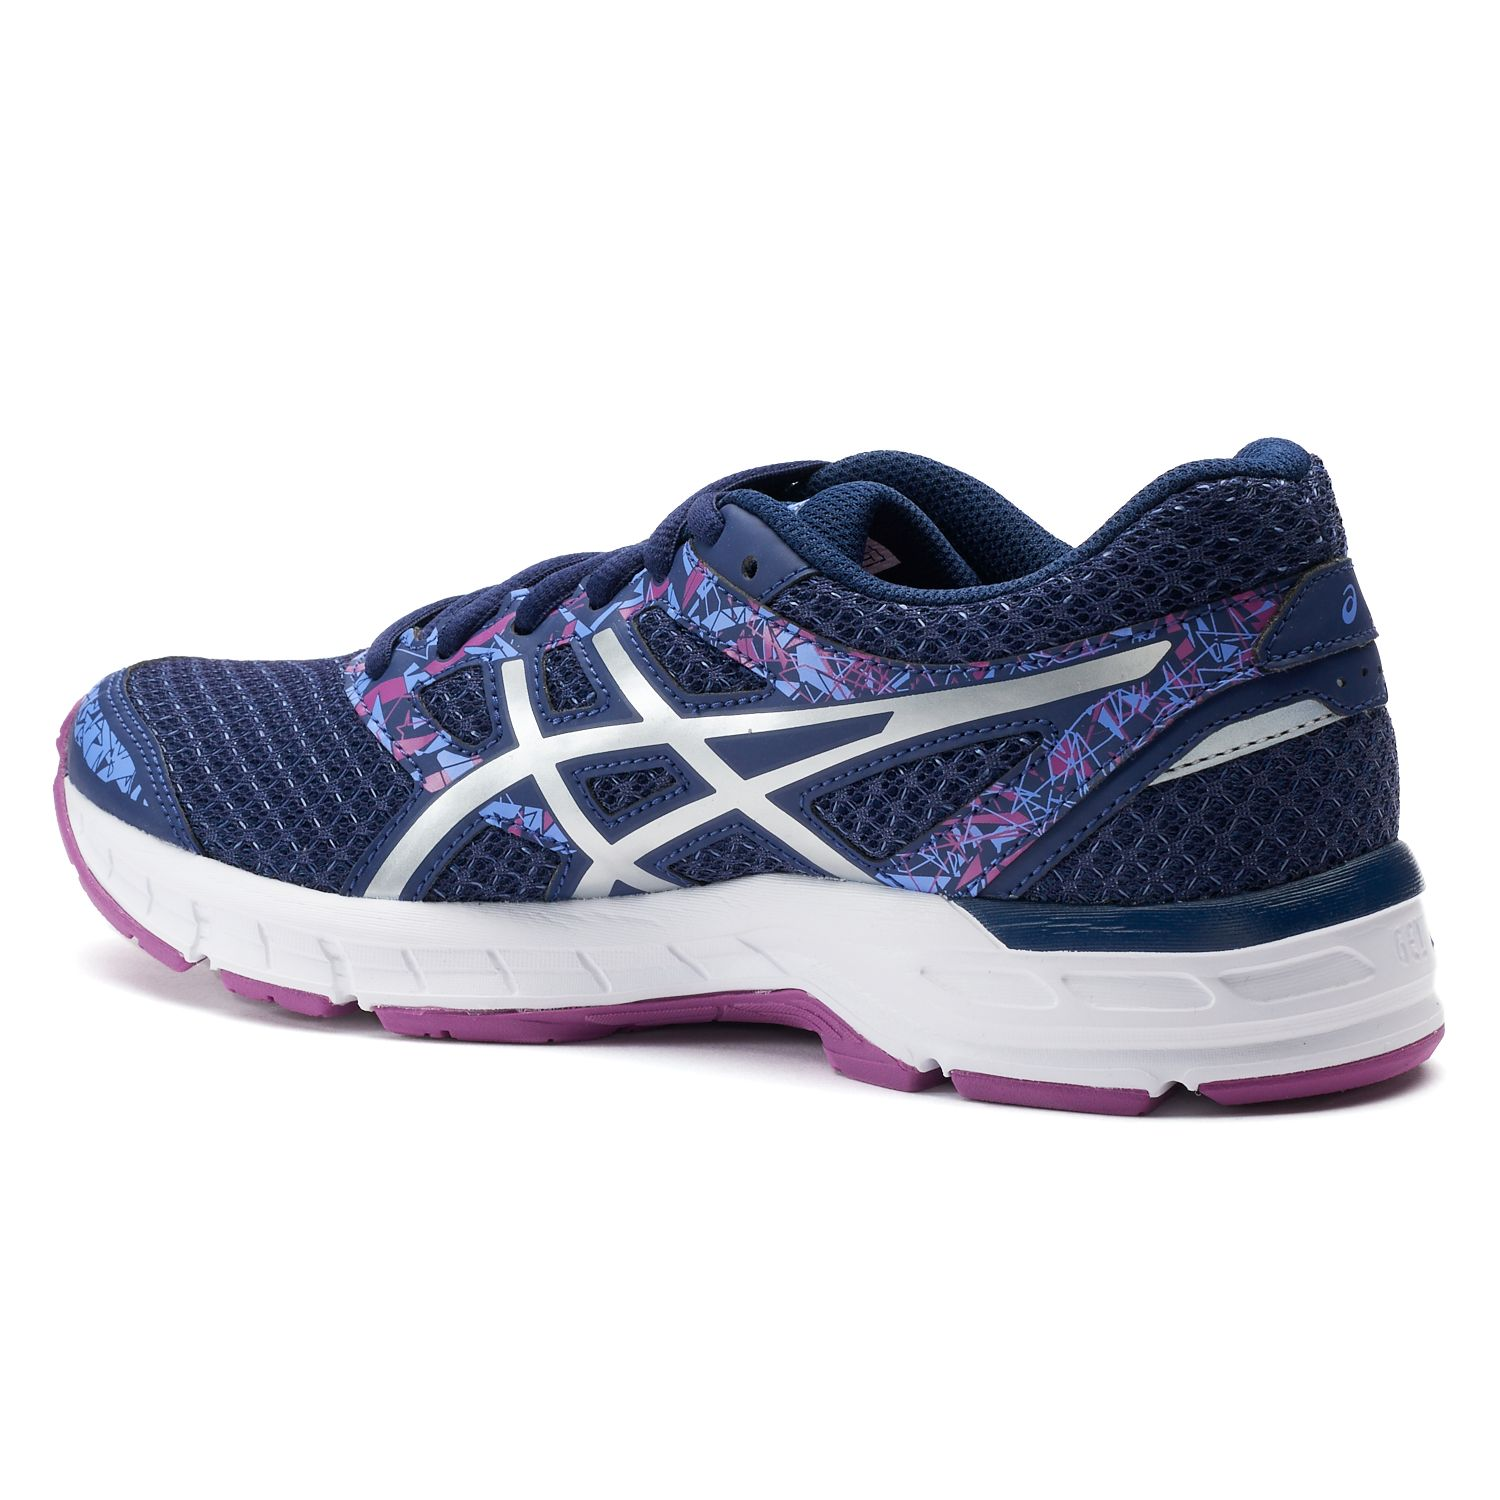 5b4a6b4defe0 Womens ASICS Wide Shoes